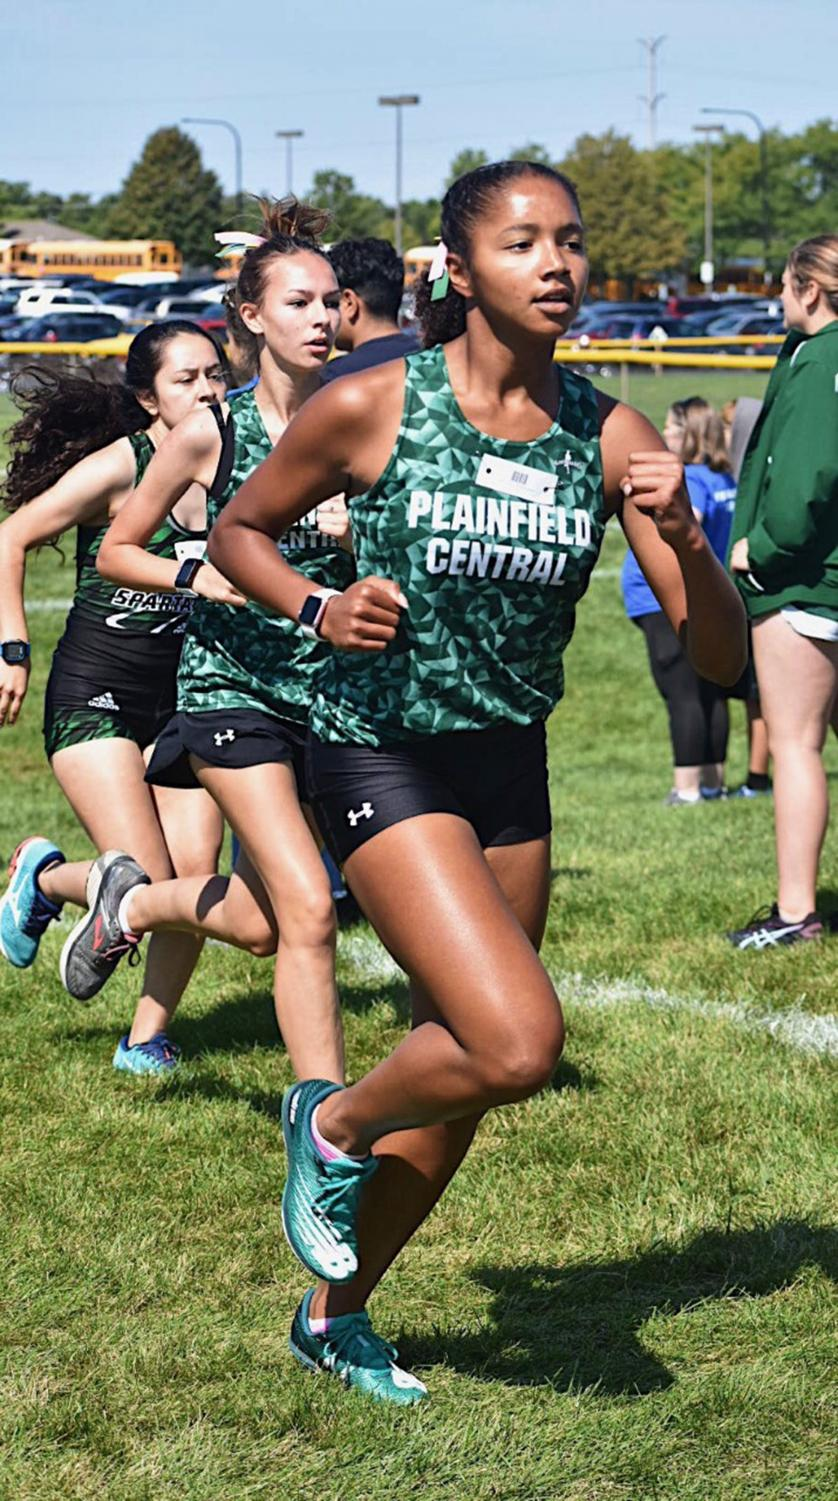 Alexis Fuqua, junior, placed 13th in Open Race at the Wildcat Cross Country Invite on Sept. 7